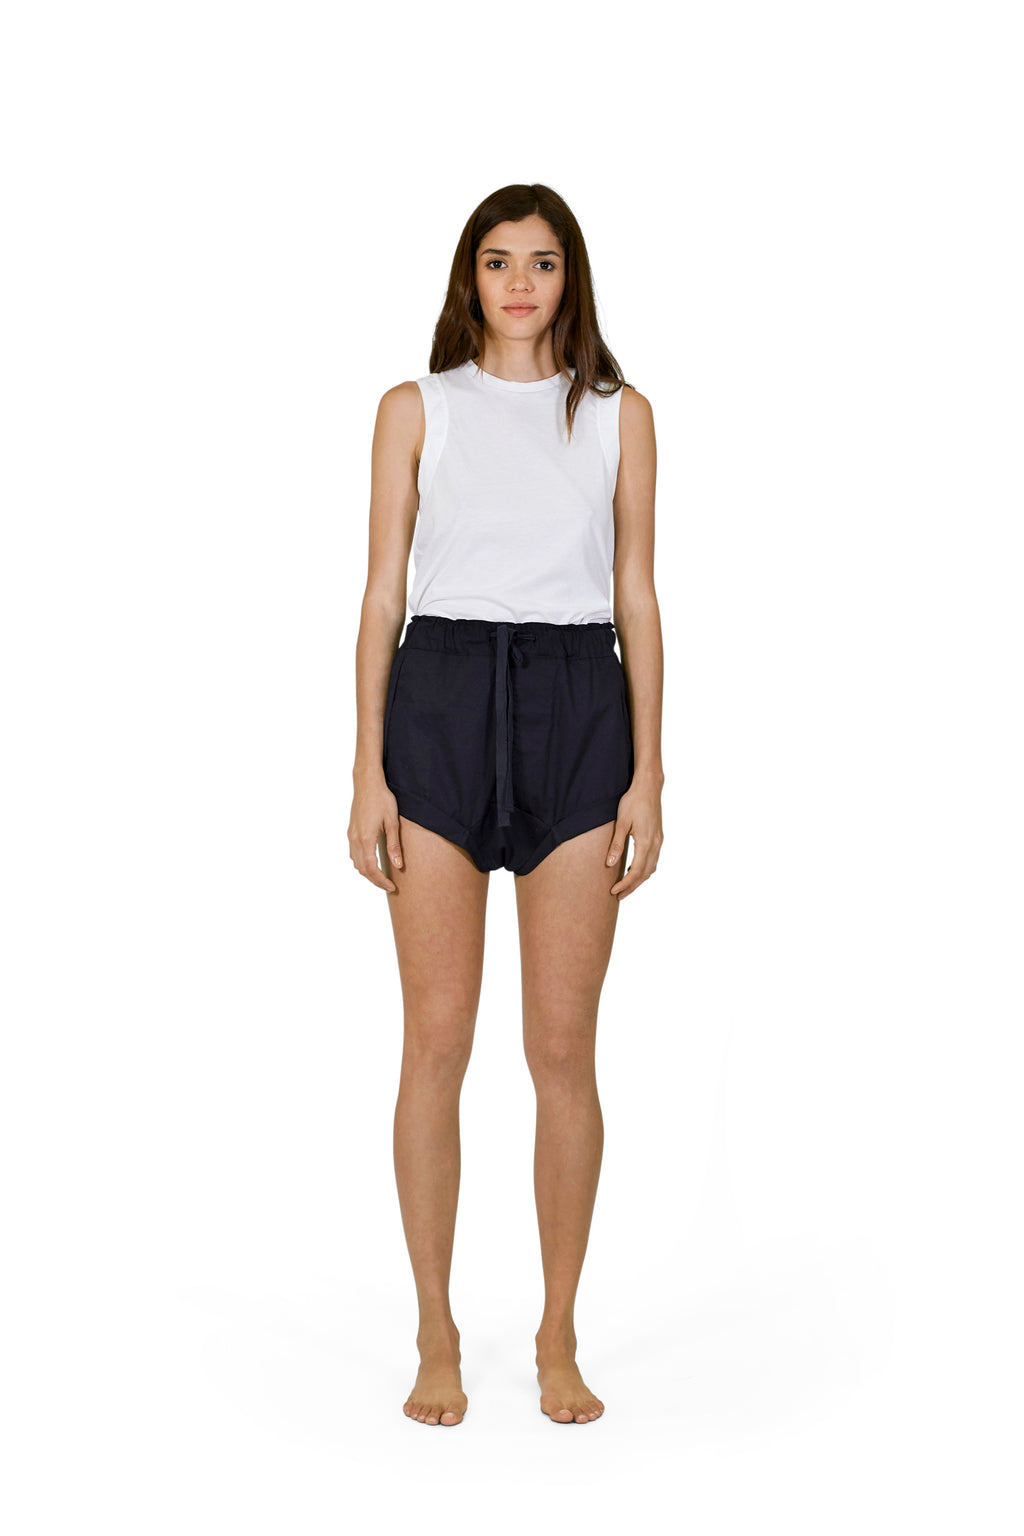 SanBasic Drop Short